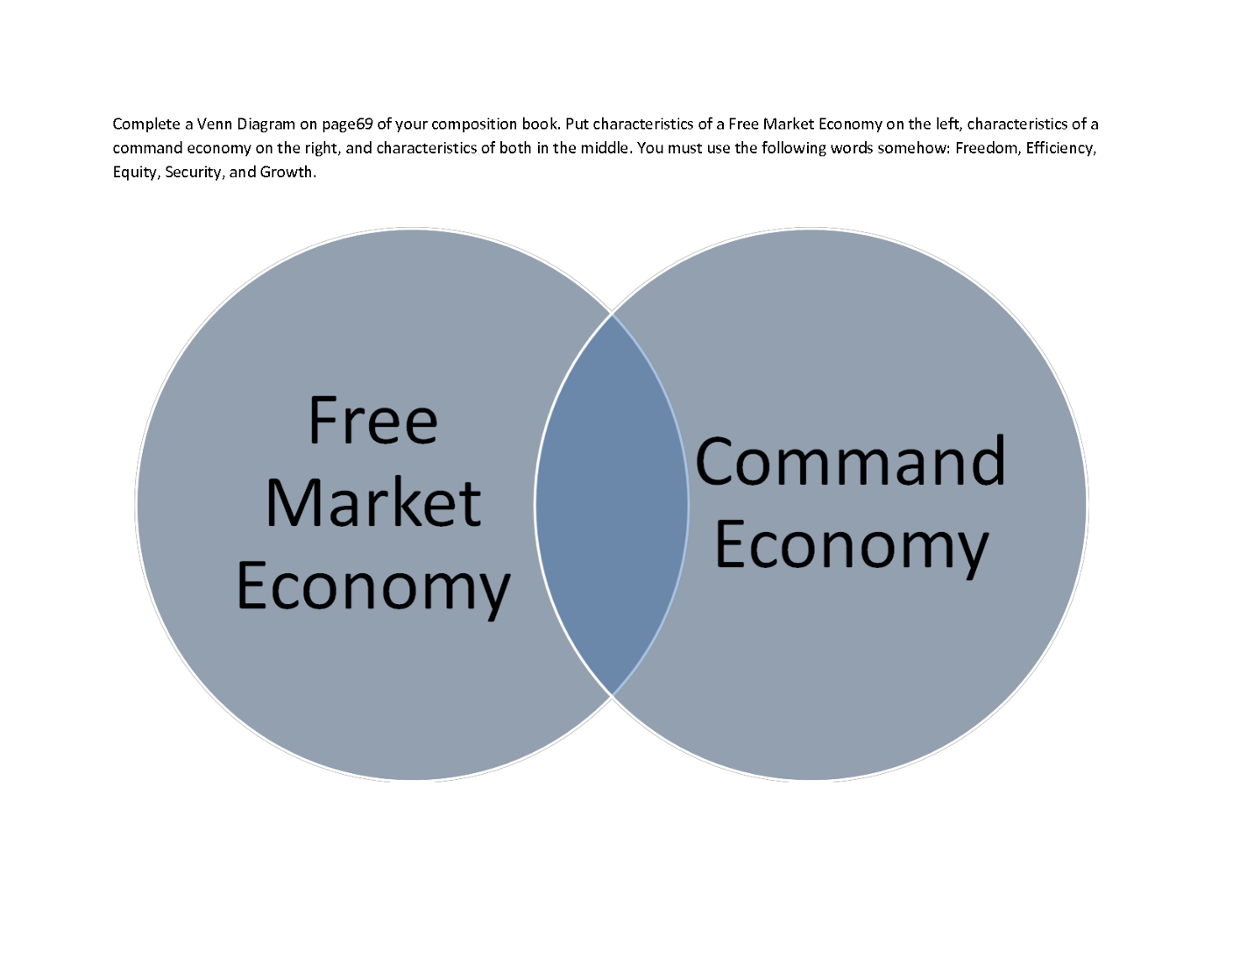 planned economy vs free market Market economy and centrally planned economy the capitalist or market economic system emphasizes complete freedom of individuals as buyers and sellers through the price mechanism in such a market, price of a commodity is based on market forces of demand and supply.